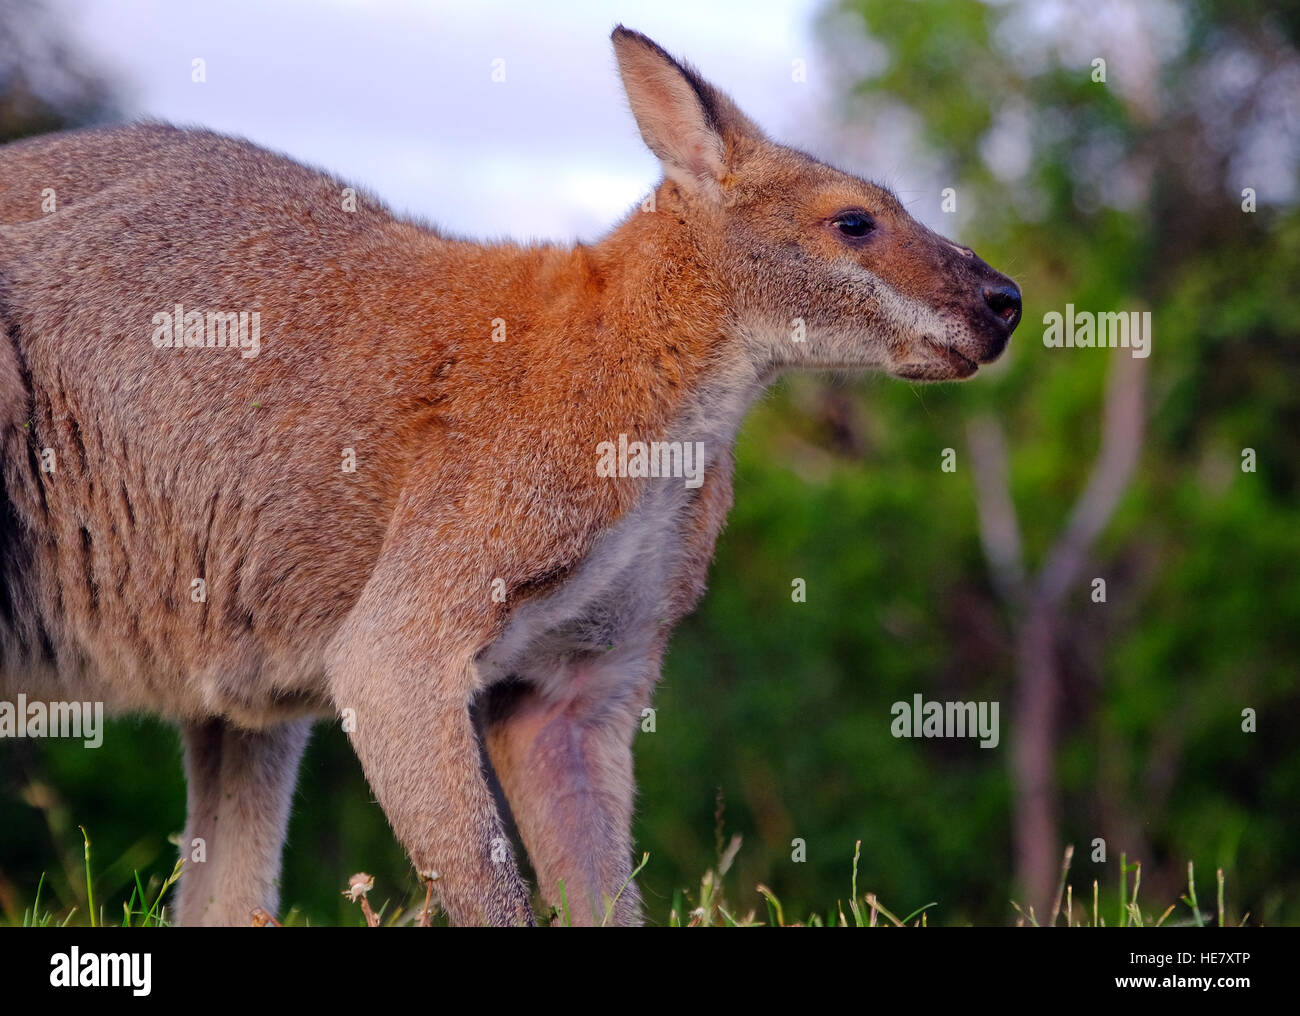 A kangaroo in a field in the state of Victoria,Australia - Stock Image